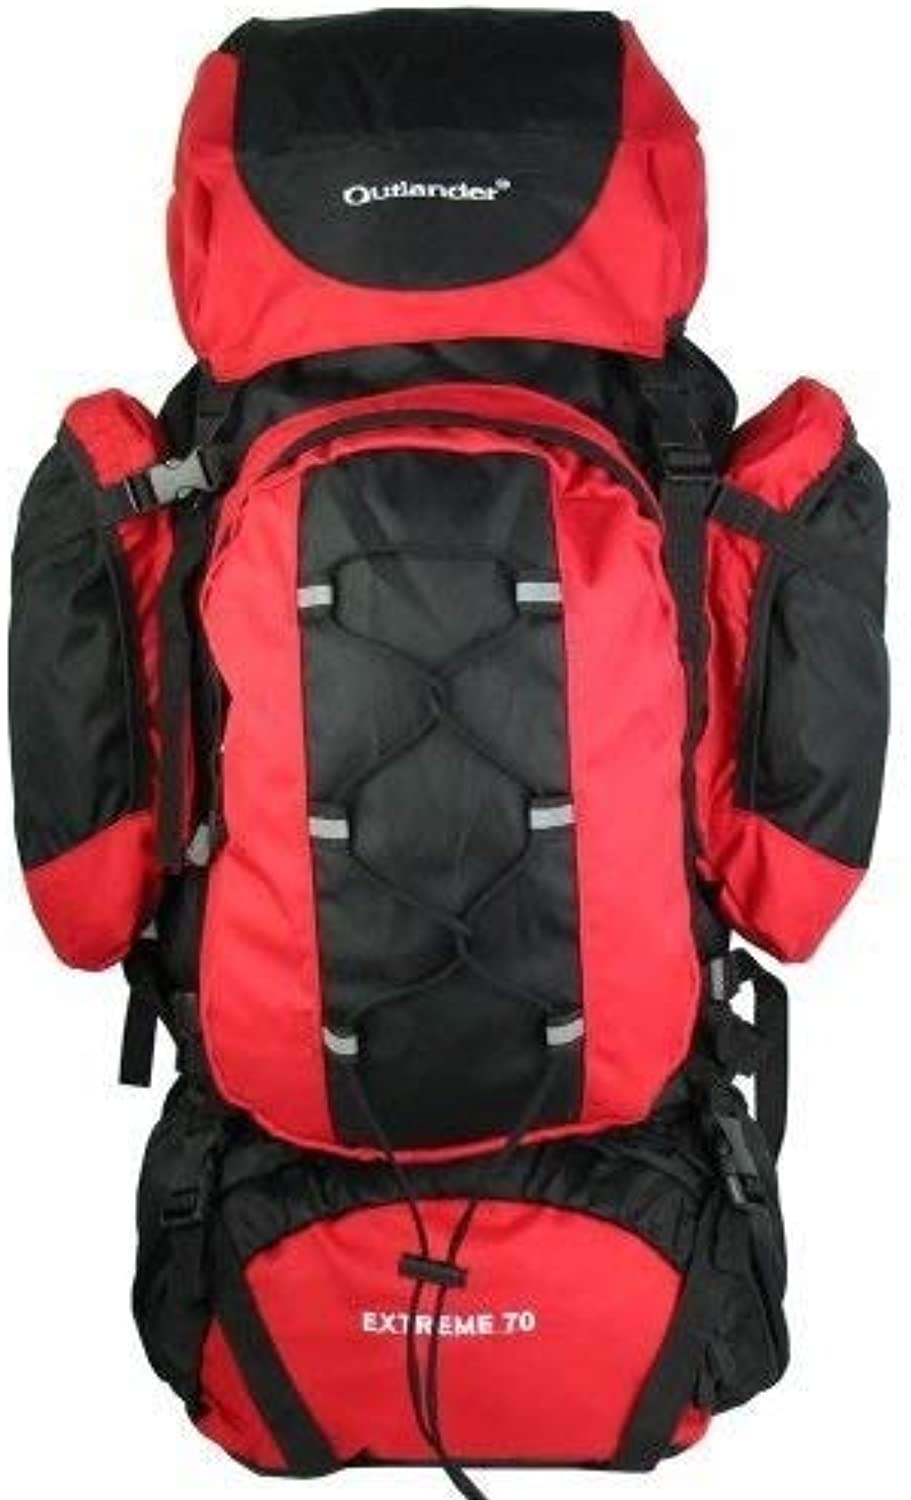 Camping Supplies Boarding Backpack Outdoor Sports Camping Bag Mountaineering Bag Large Capacity 70L Professional Travel Hiking Backpack Large Capacity